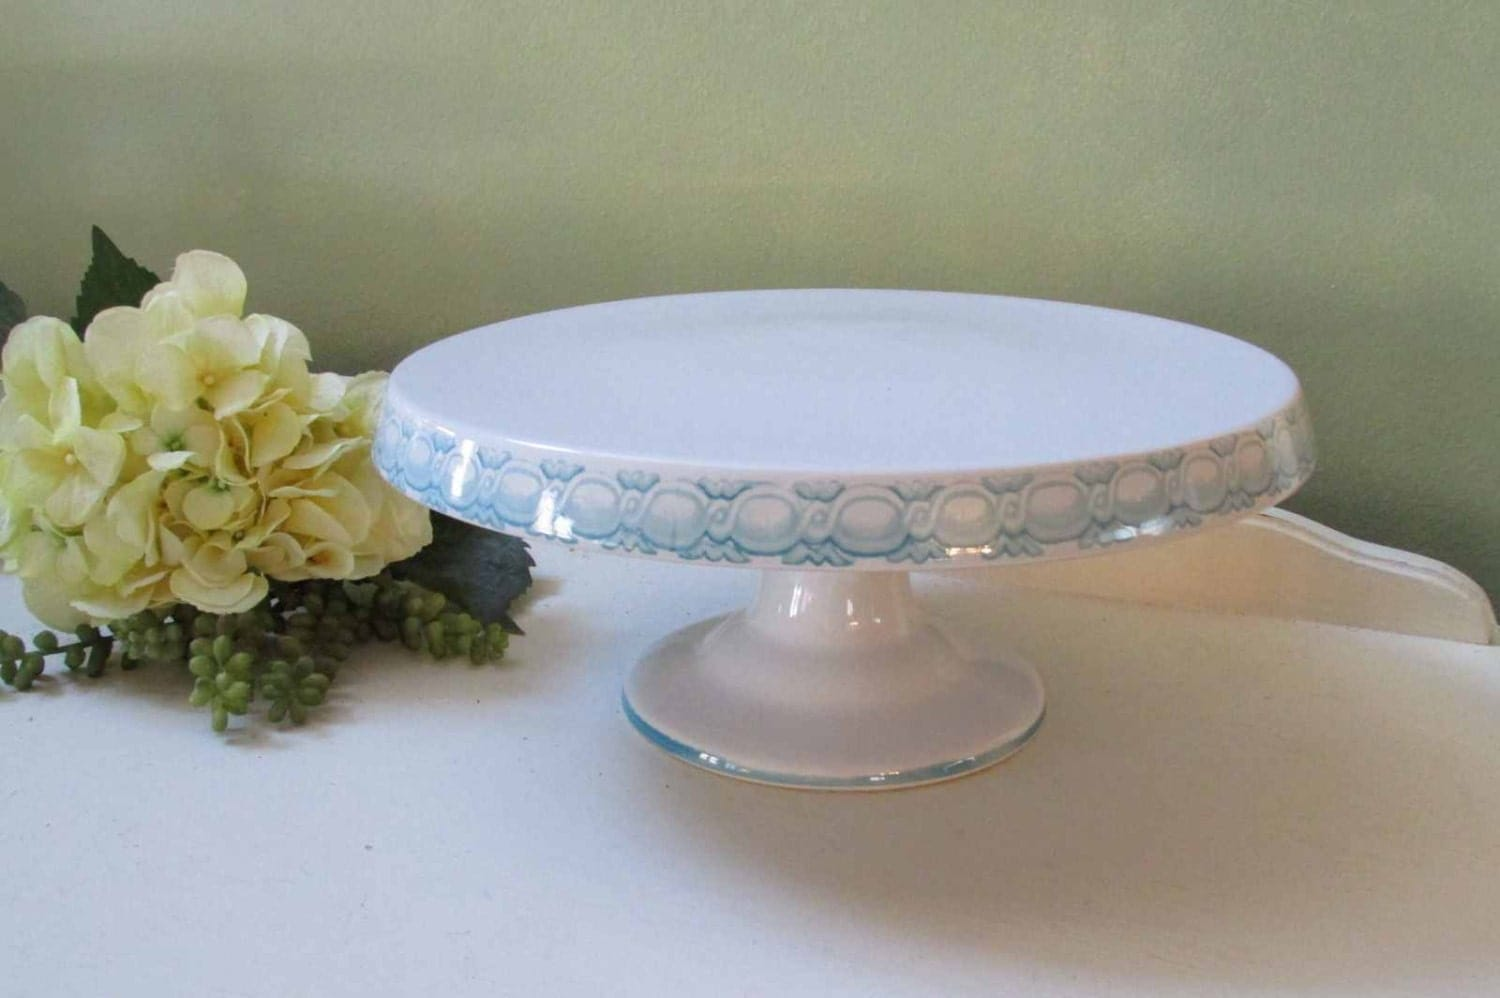 White Cake Plate Stand 3 Tier Rectangular Serving Platter & White Pedestal Cake Plate - Castrophotos